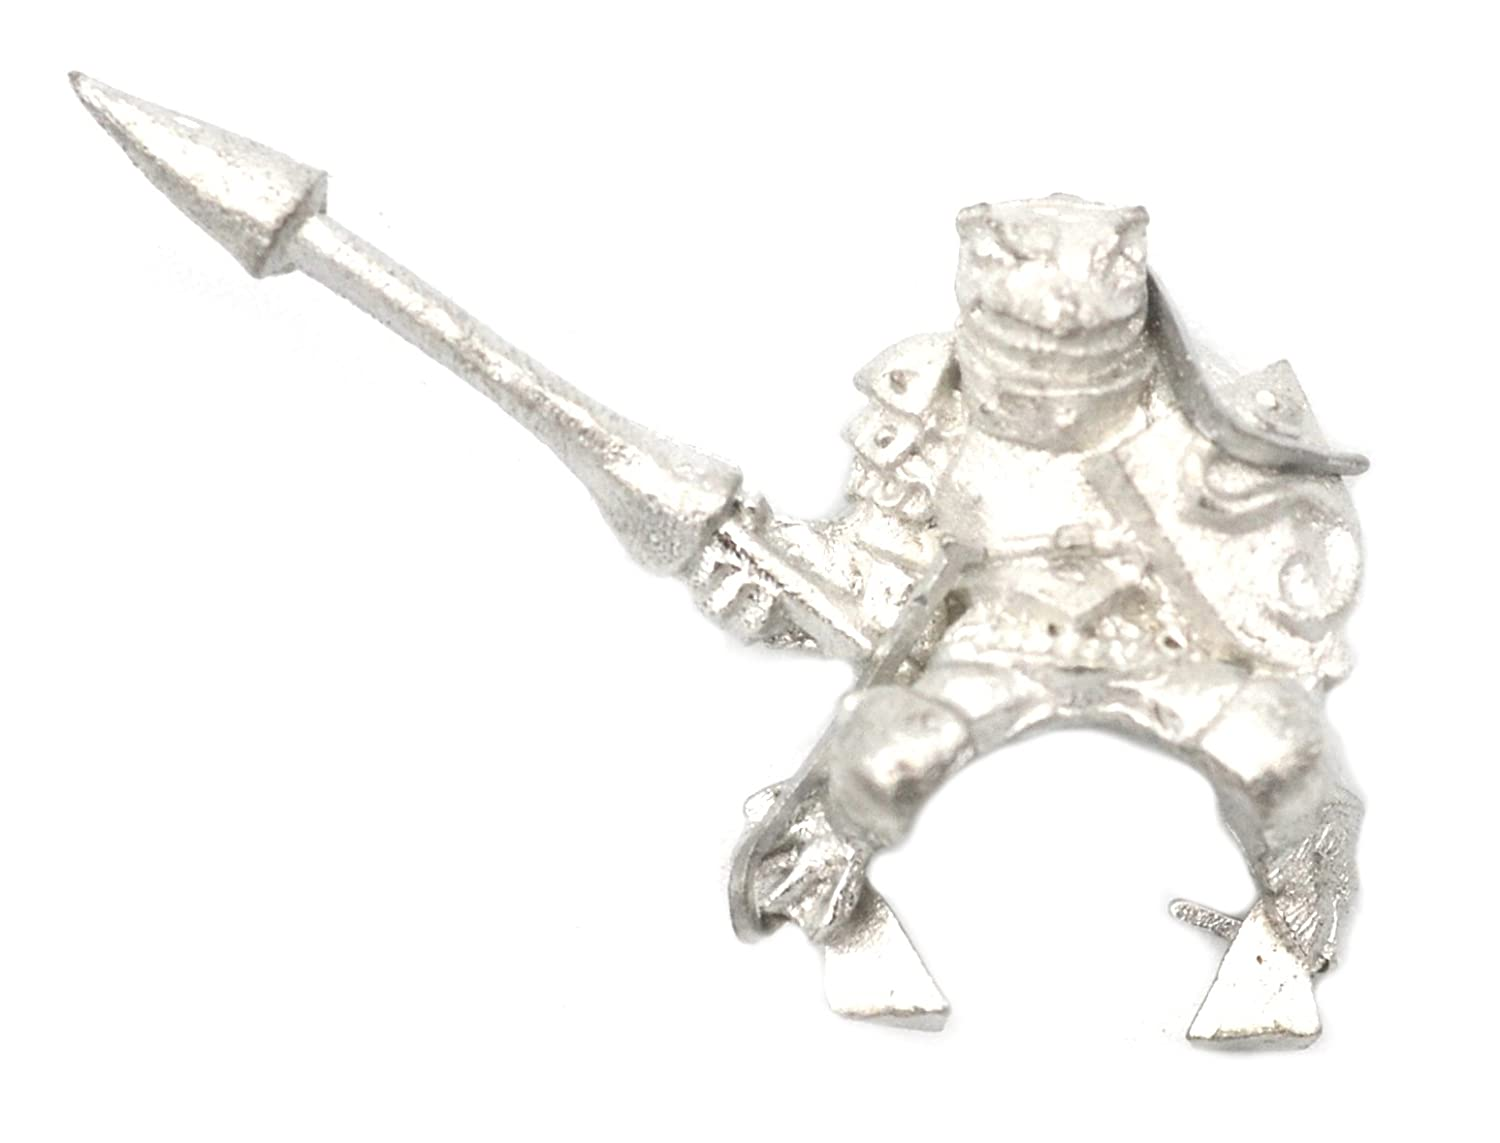 Made in USA Stonehaven Miniatures Stonehaven Grippli Knight Rider Miniature Figure for 28mm Table Top Wargames